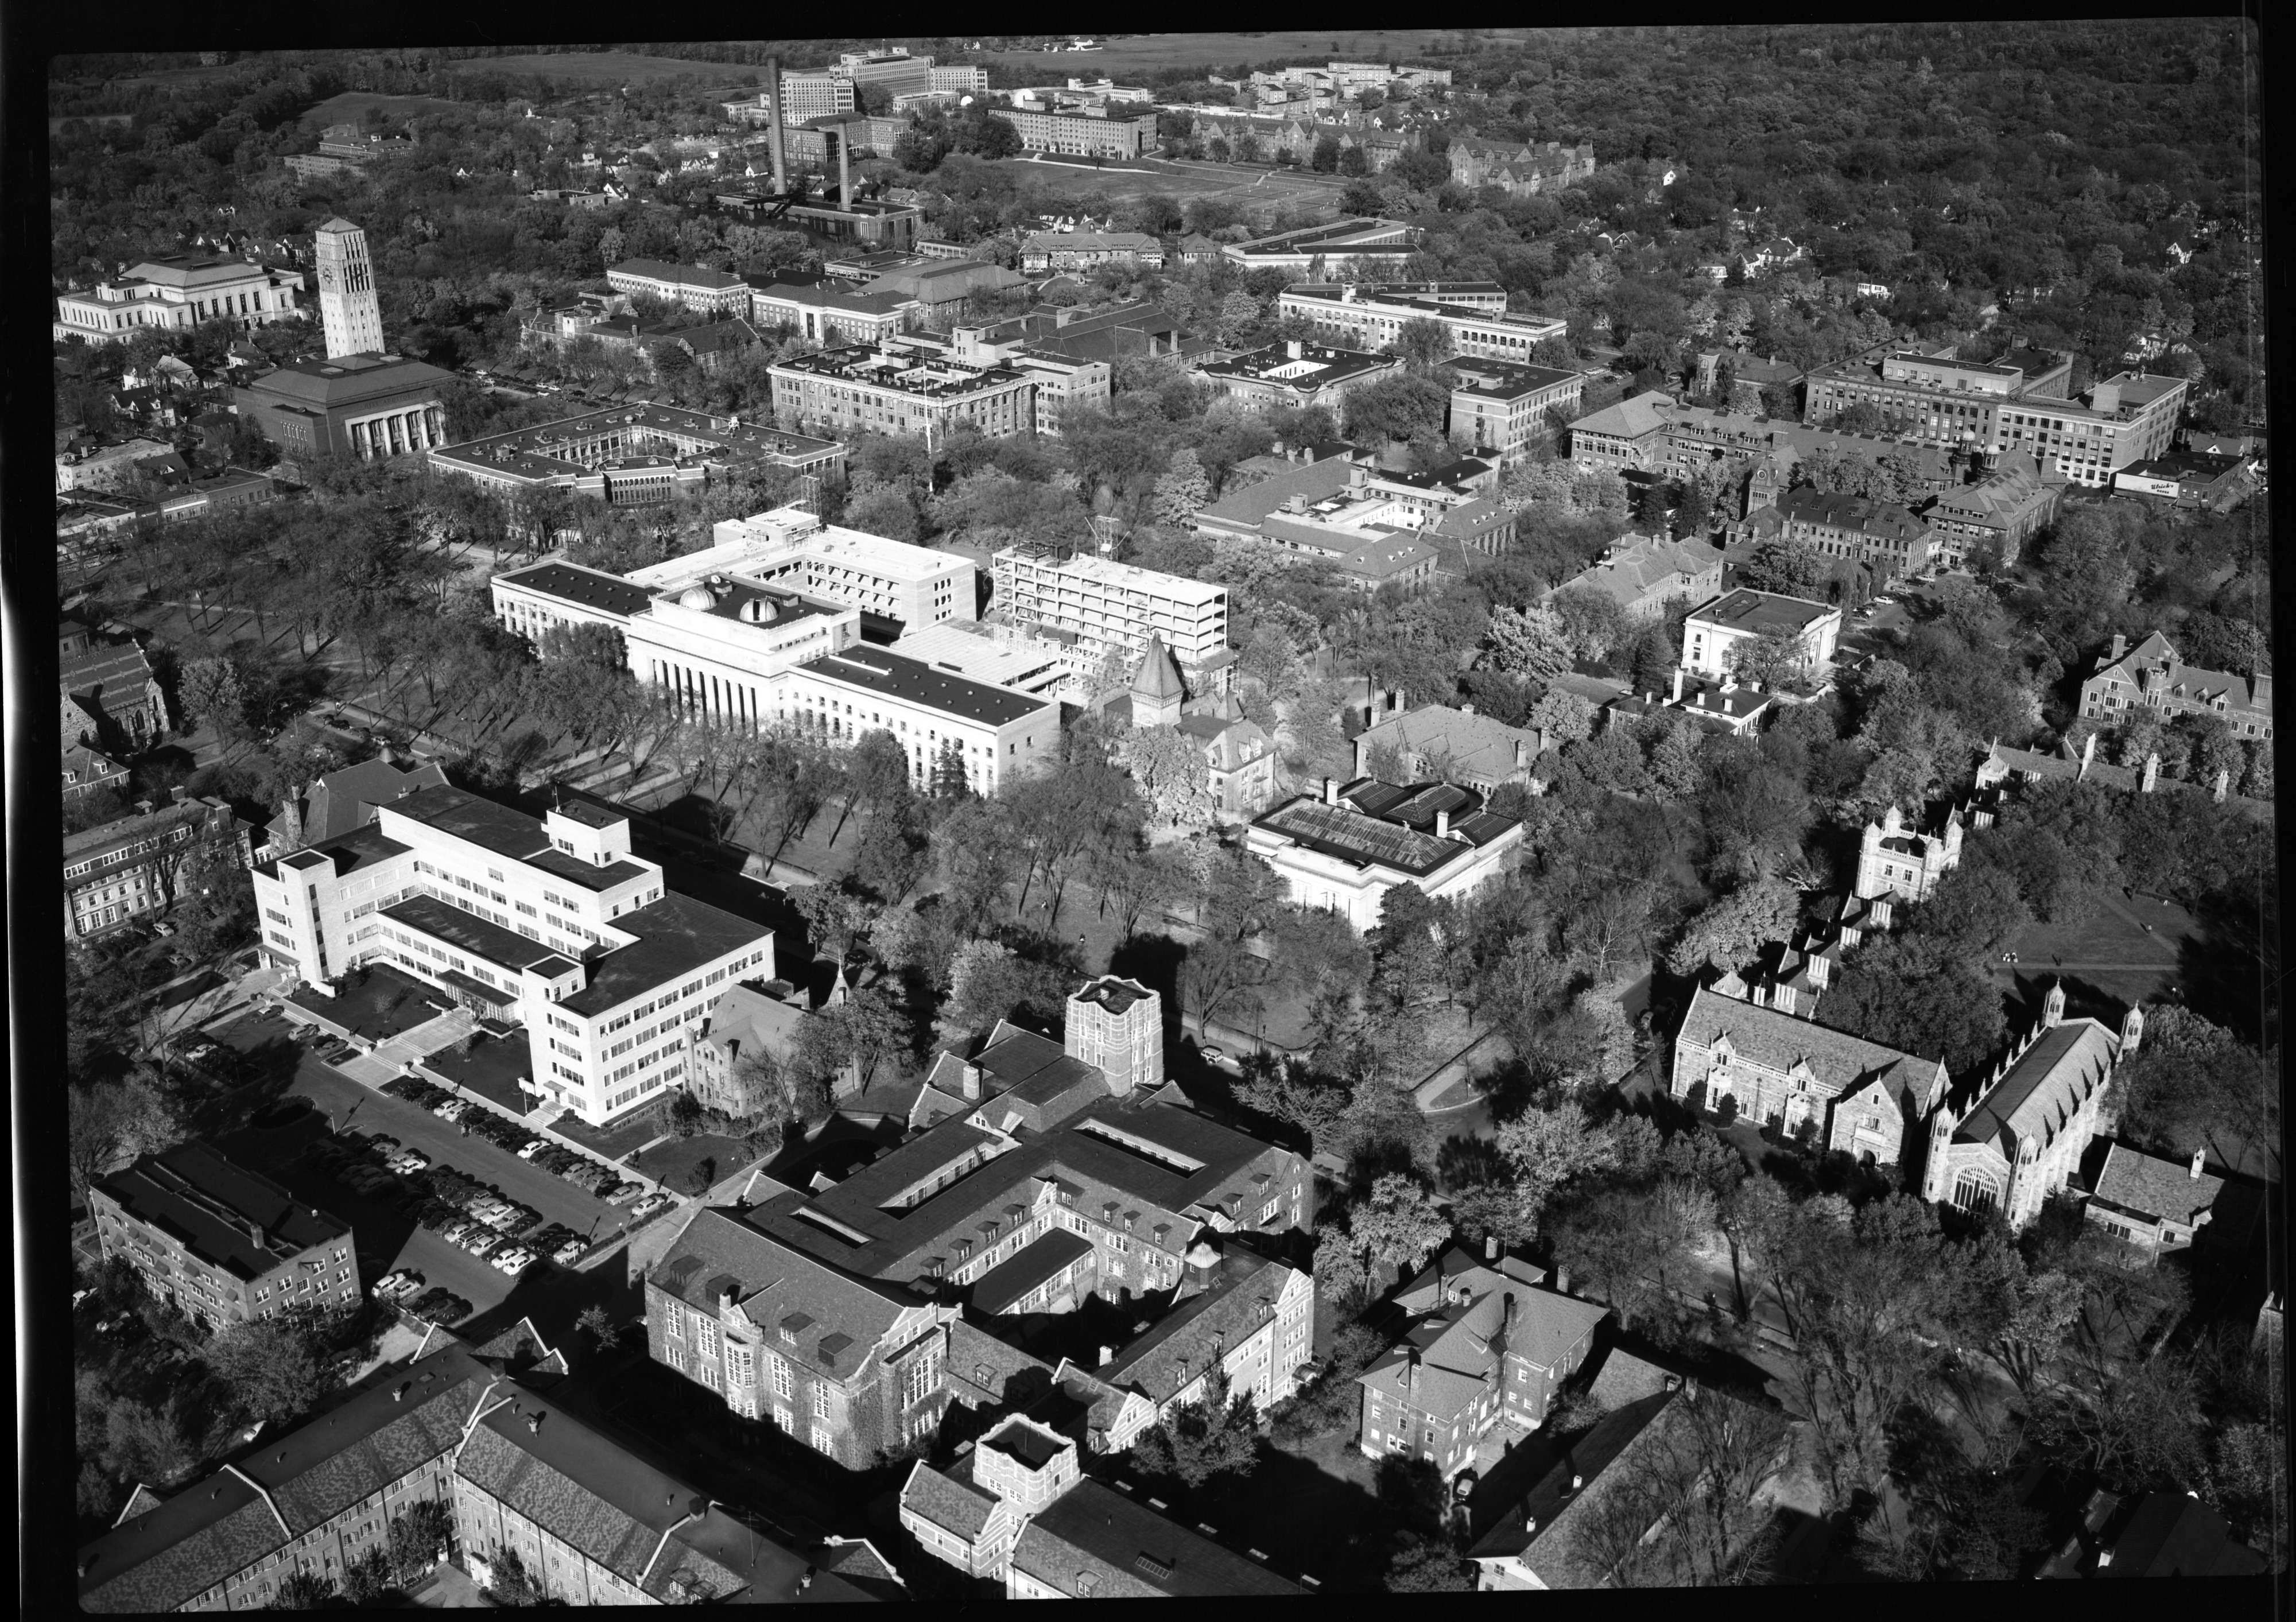 Angell Hall Progress, October 1951 image